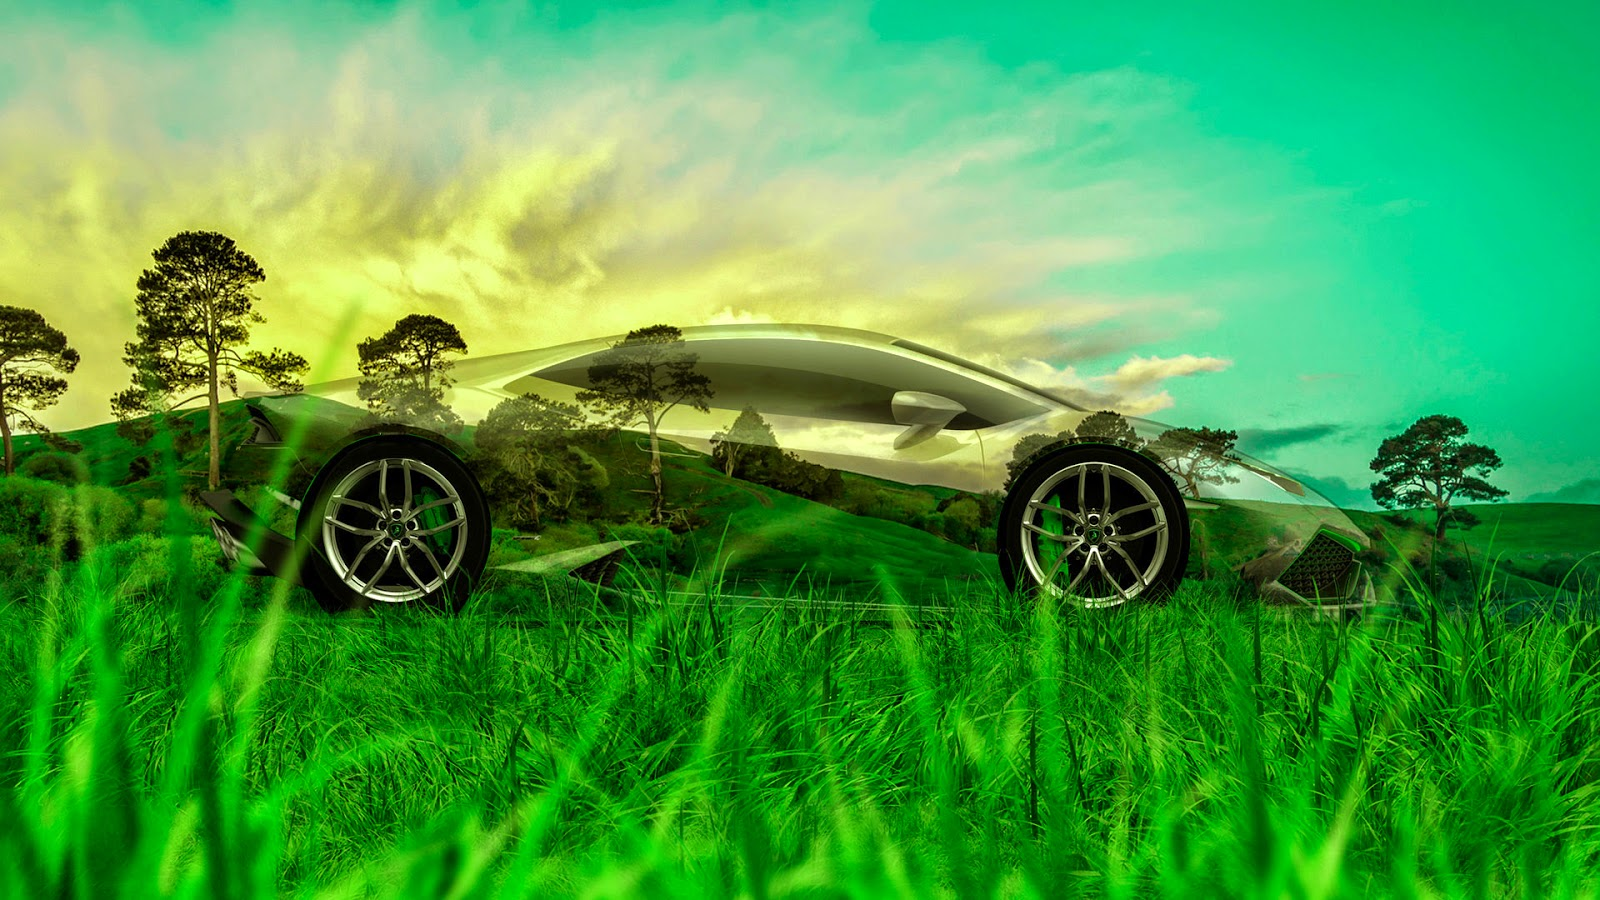 Perfect Genial Mazda RX 7 JDM Tuning 3D Crystal Nature Car 2015 Green Grass Style  4K Wallpapers